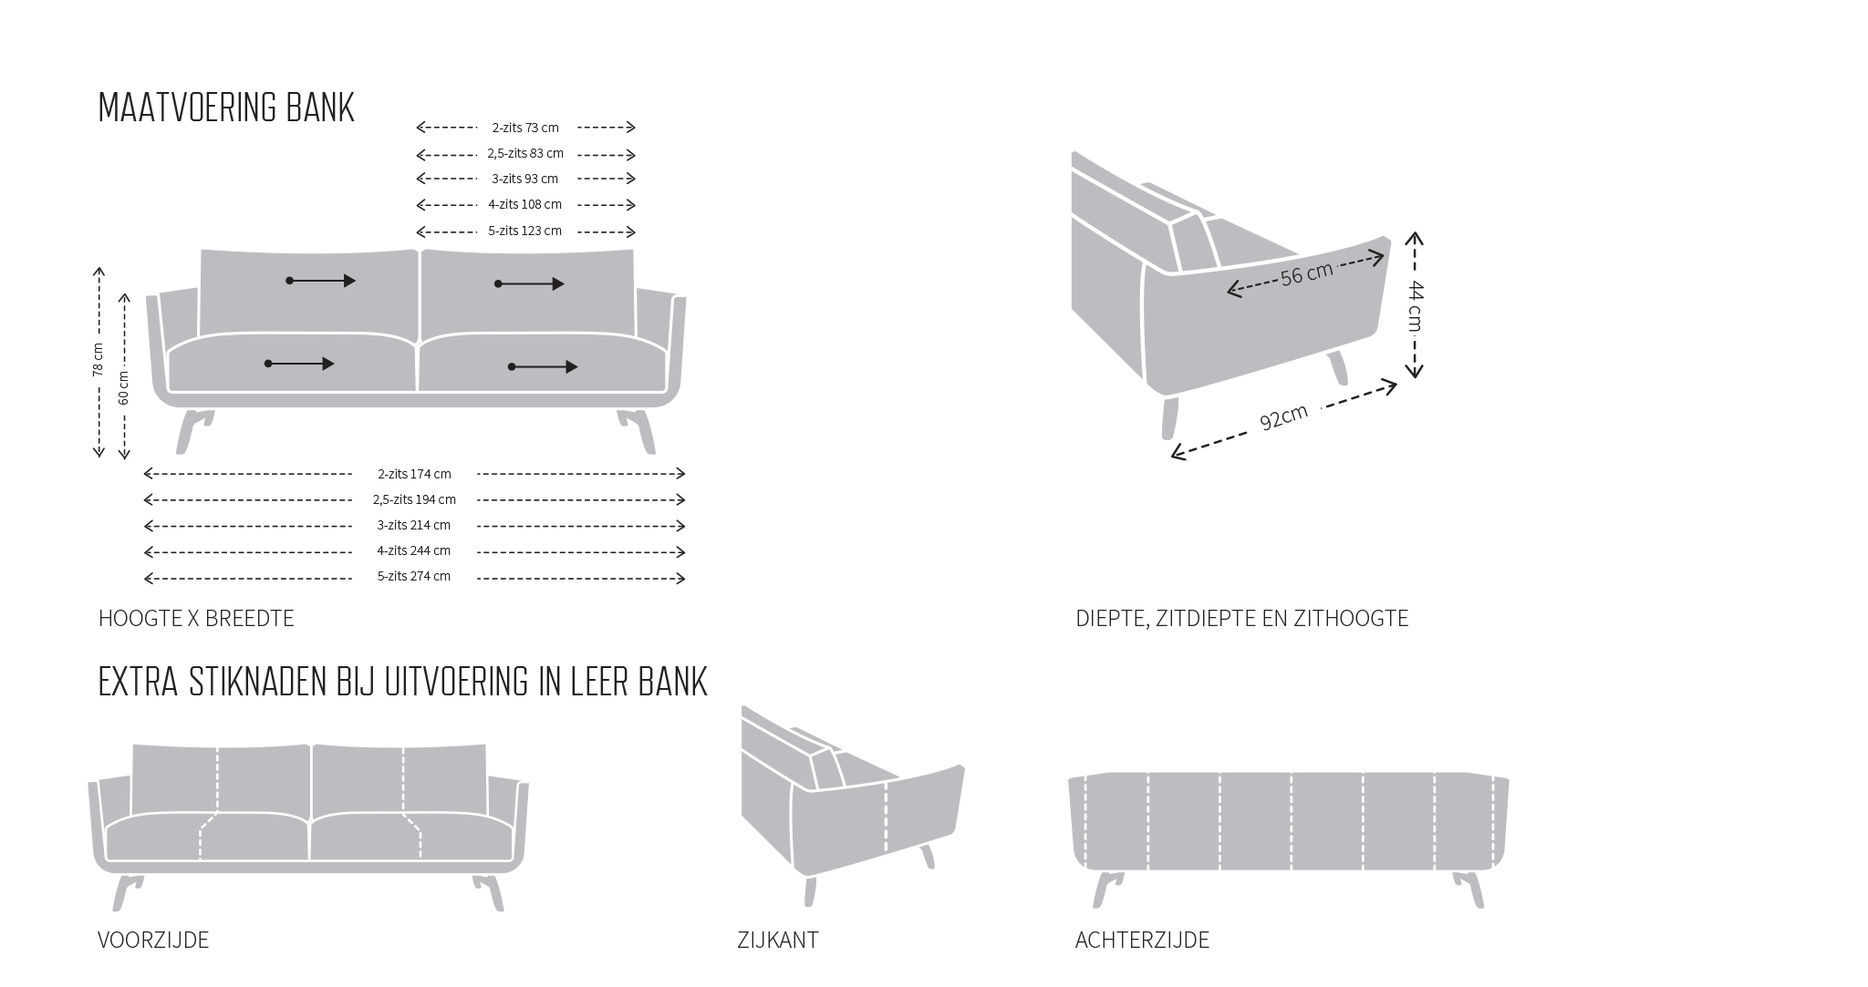 Specificaties van byen bank van design on stock bij Dotshop